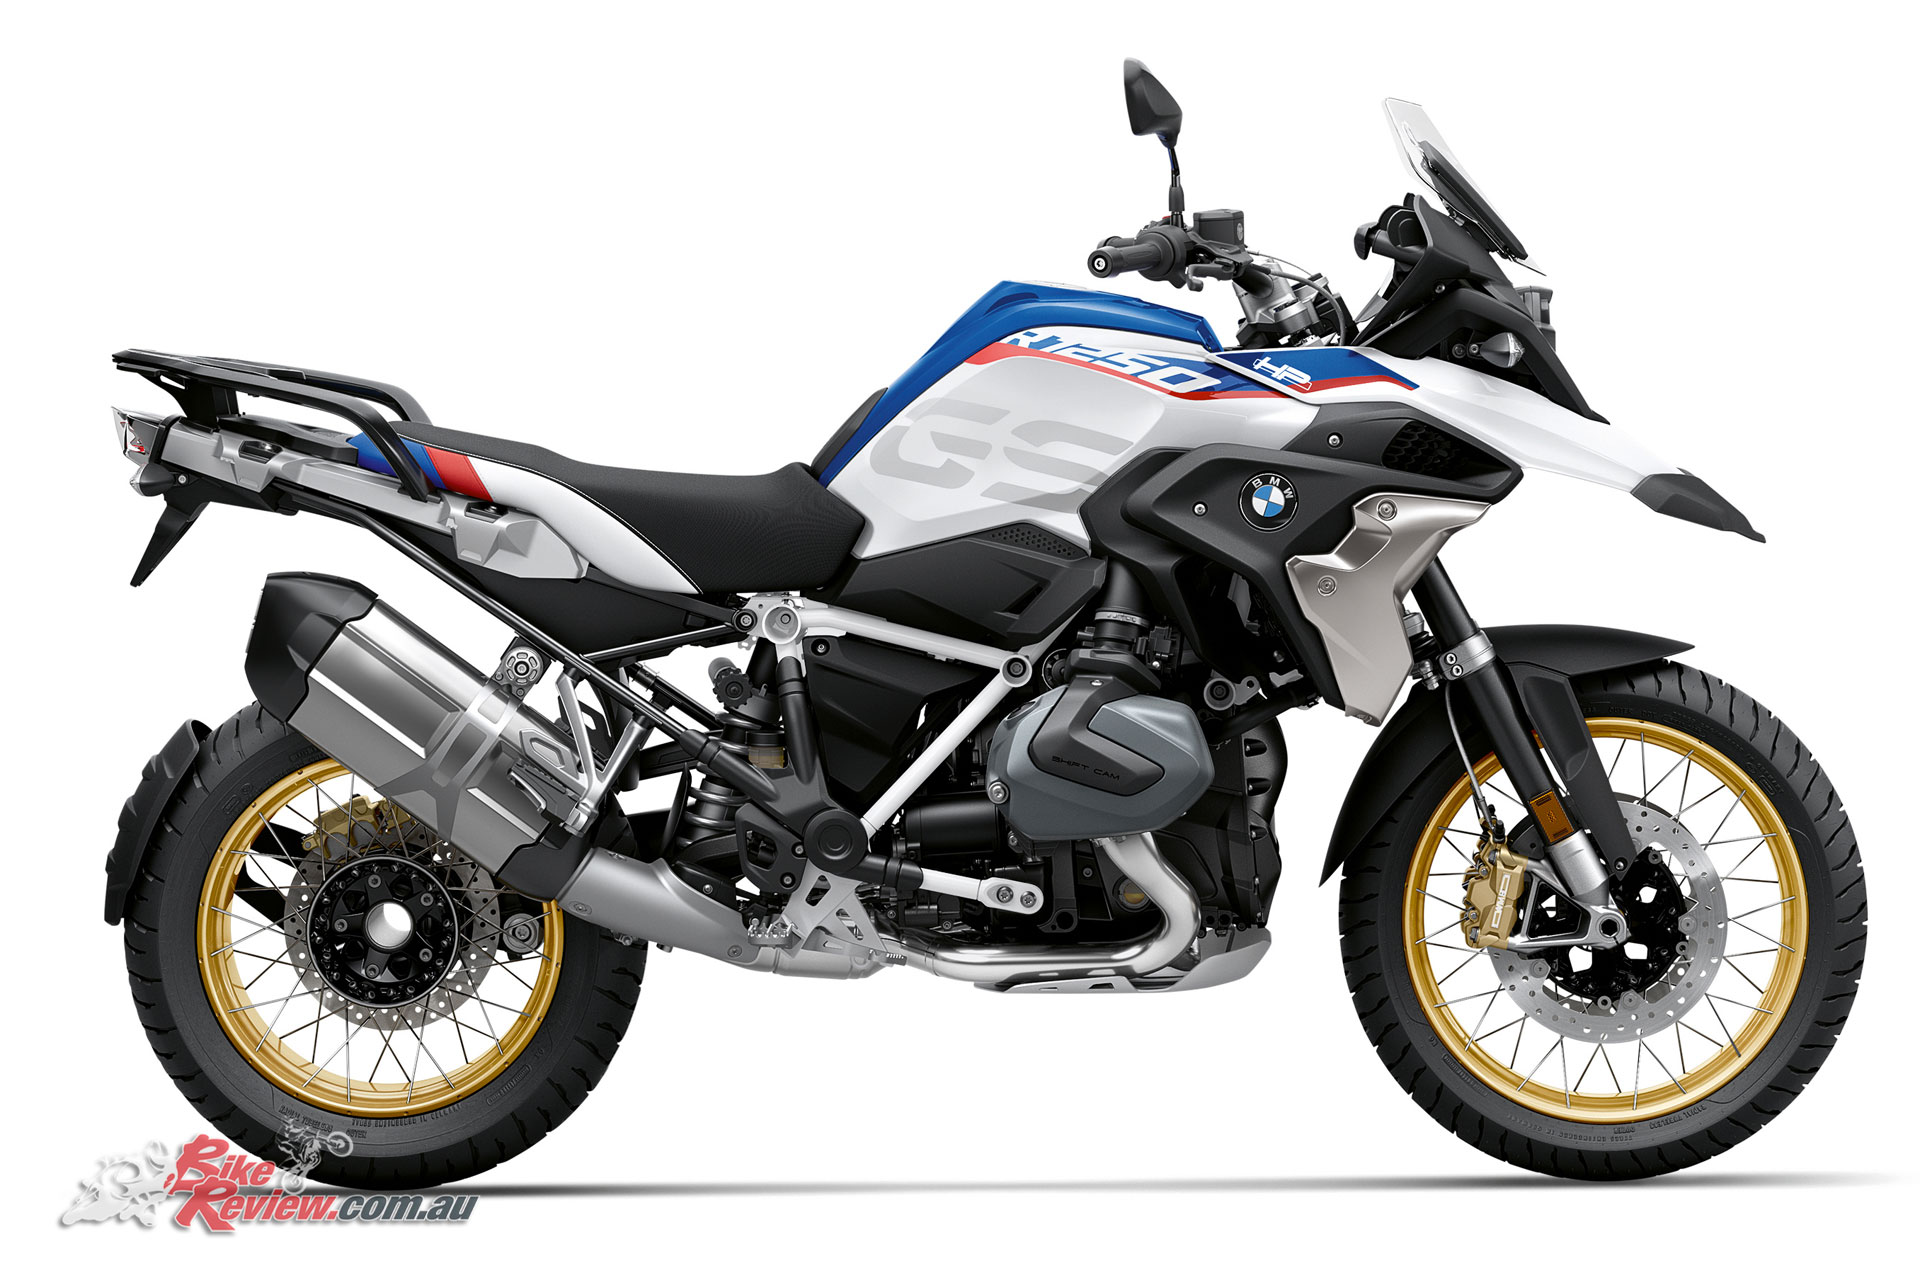 New Model 2019 Bmw R 1250 Gs Amp R 1250 Rt Bike Review